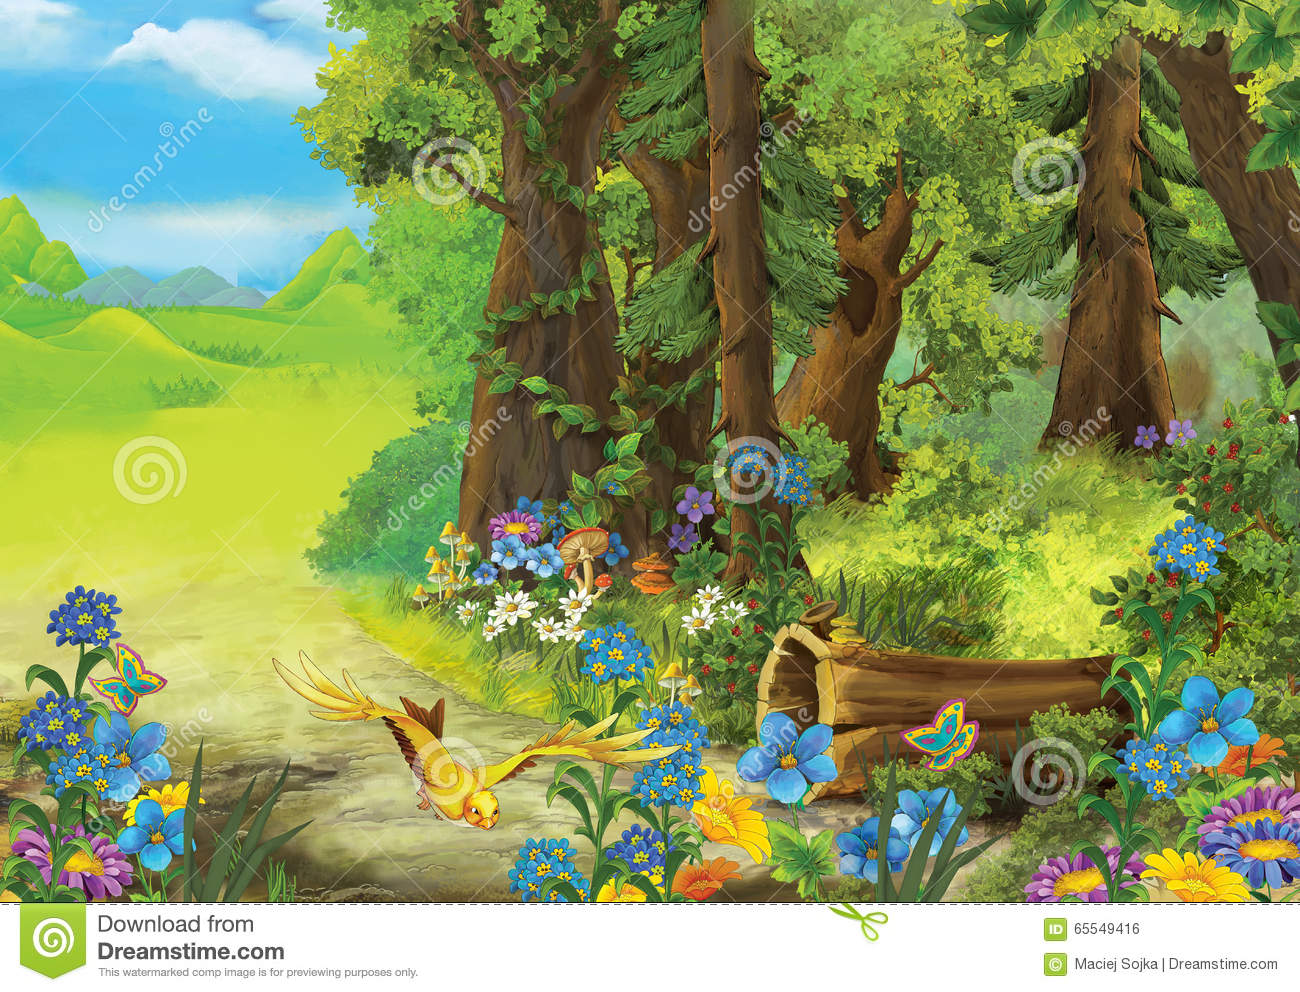 Cartoon fairy tale of forest nature image for - Fotos tale mporaines ...